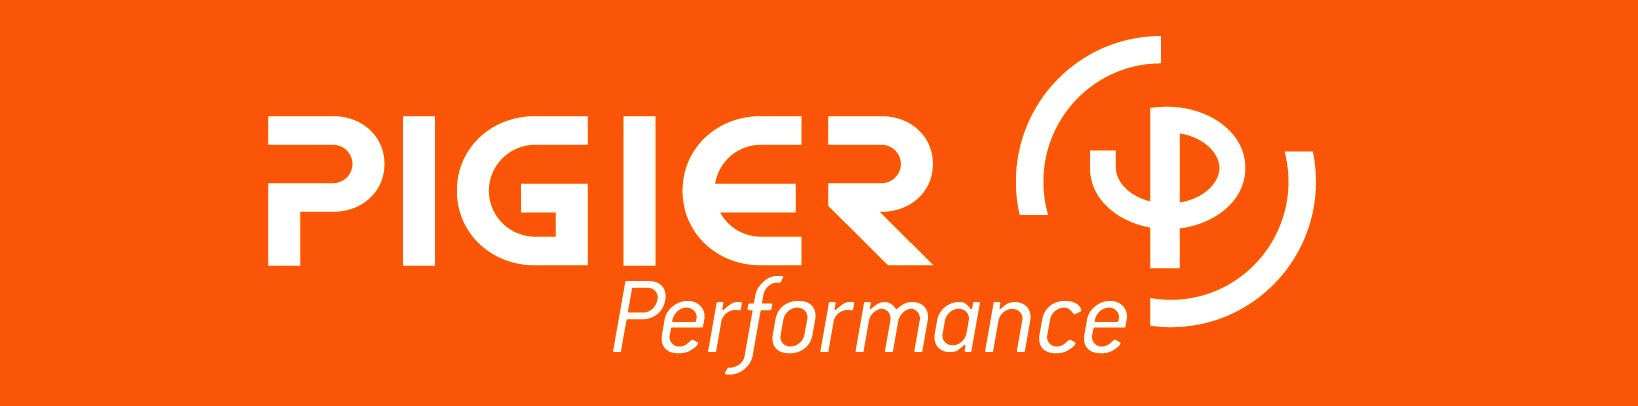 PIGIER Performance: Focus sur le Bachelor en Management Opérationnel